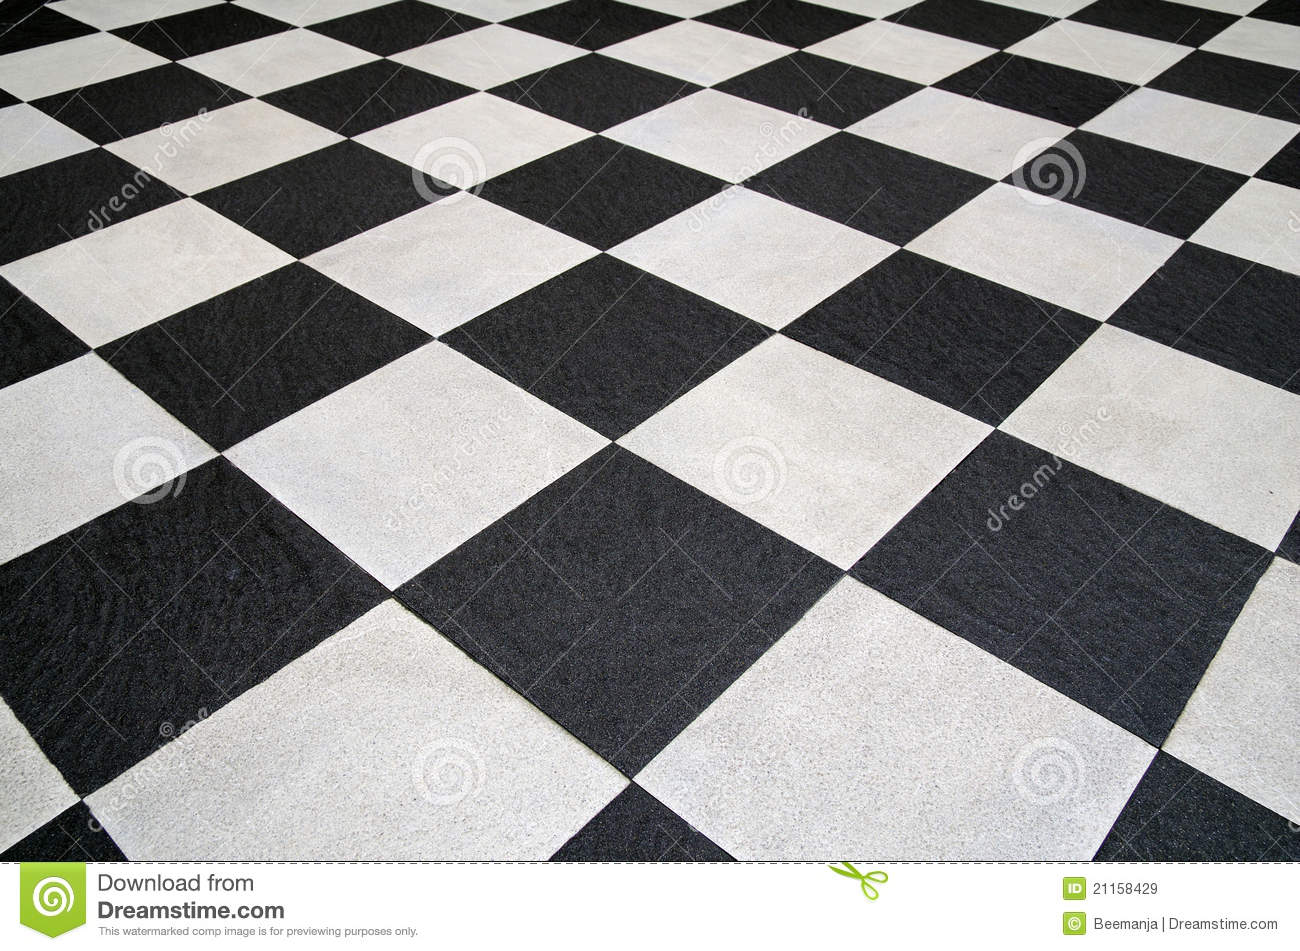 Square Black And White Tiles Floor Royalty Free Stock